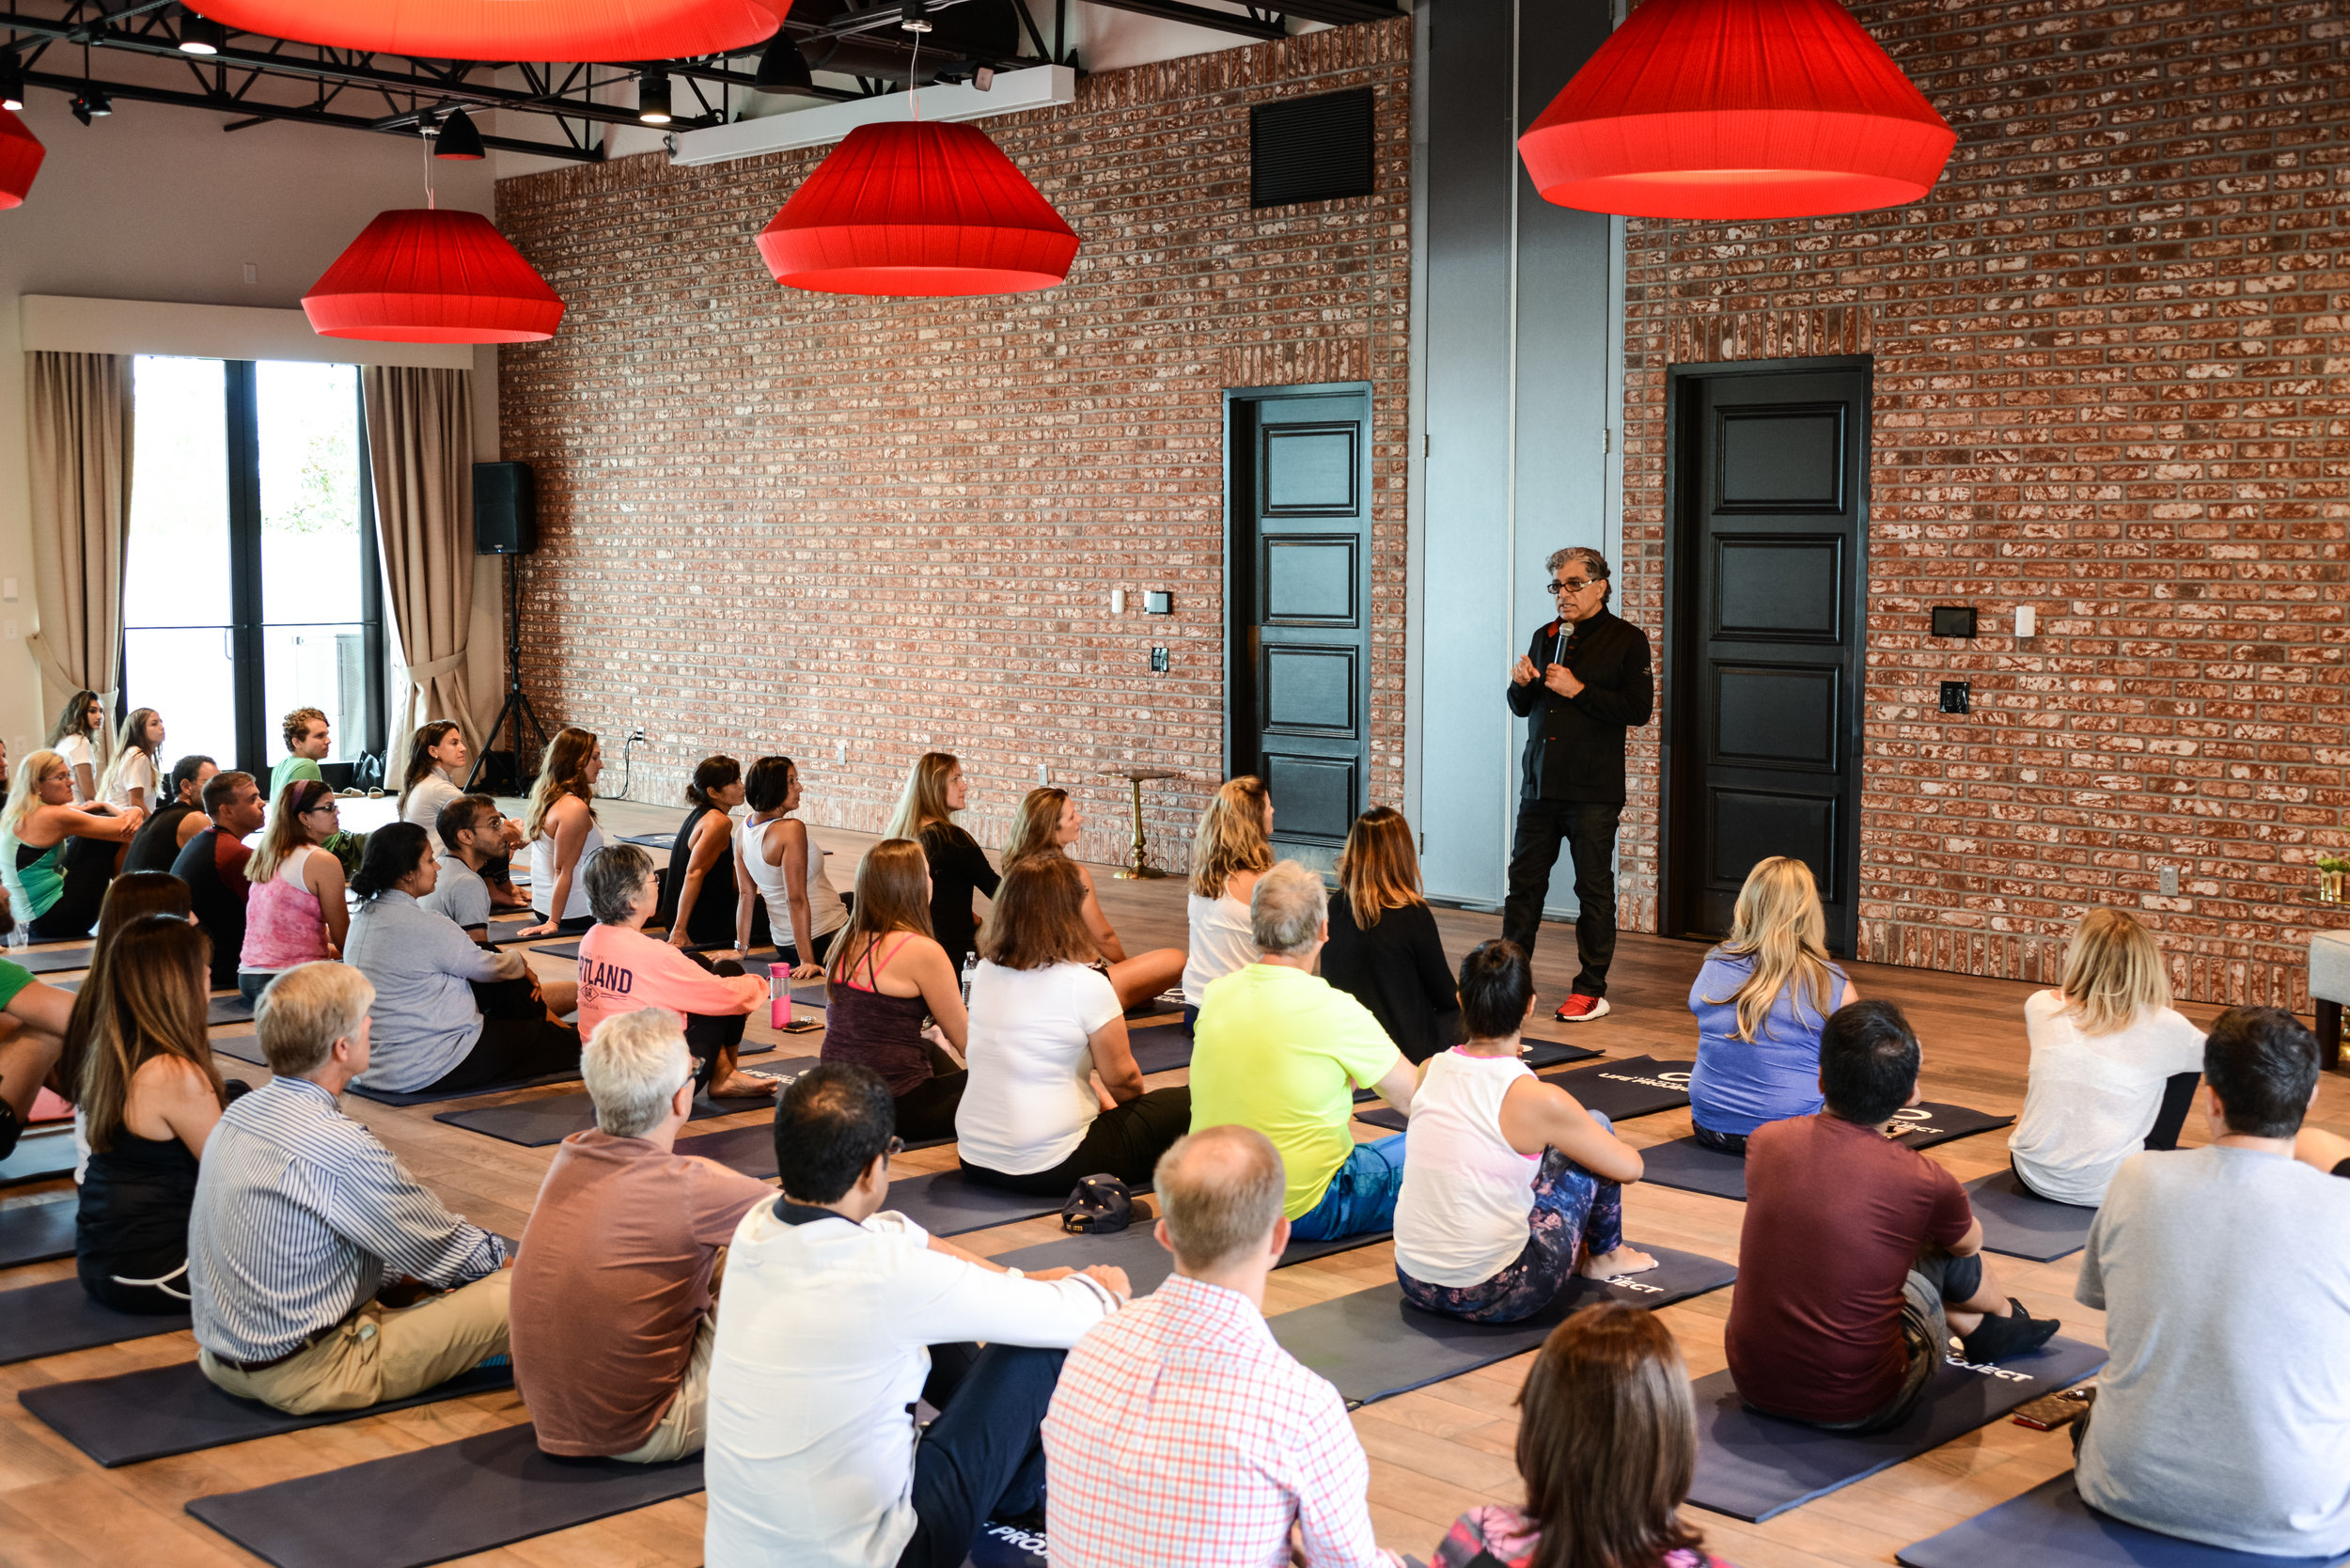 Private yoga and meditation led by world-renowned Deepak Chopra and Eddie Stern